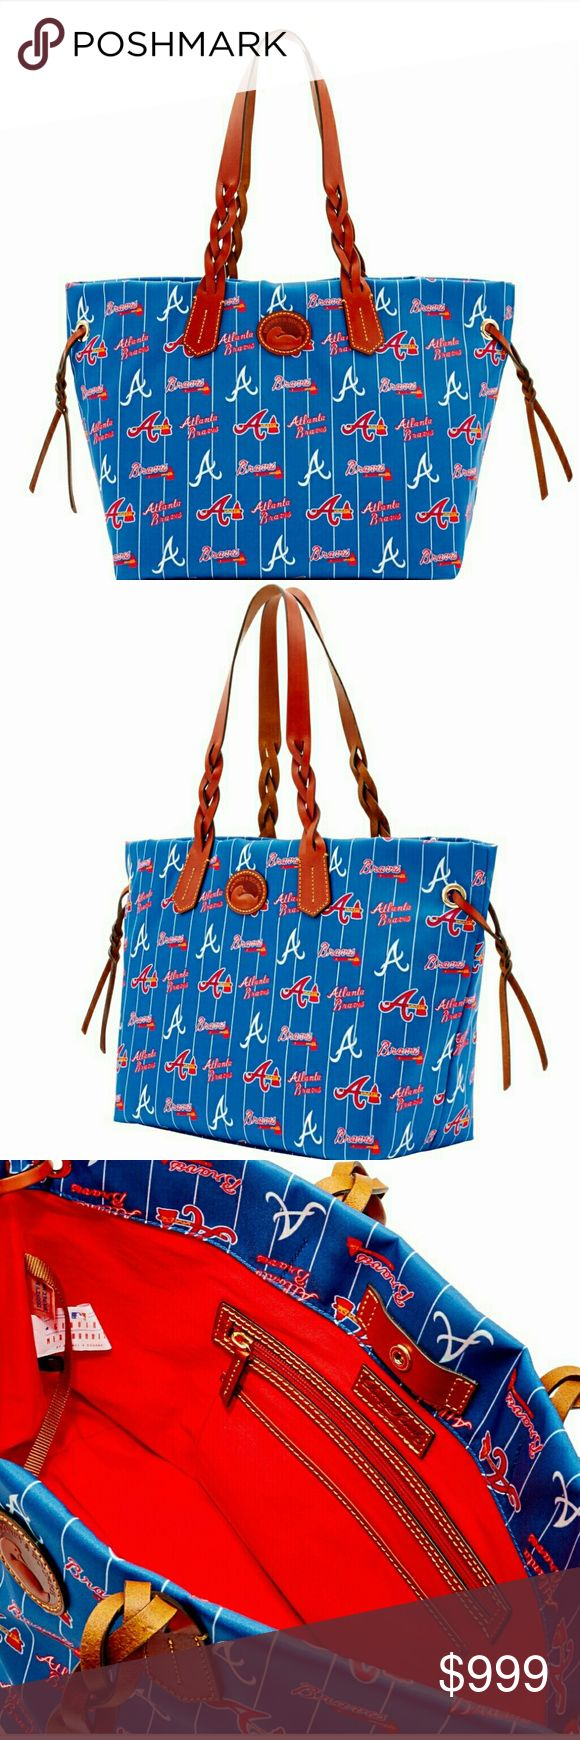 """DOONEY & BOURKE MLB BRAVES SHOPPER DOONEY & BOURKE MLB BRAVES SHOPPER  DESCRIPTION Braves Shopper H 6.75"""" x W 11.25"""" x L 11.25"""" One inside zip pocket. One inside pocket. Cell phone pocket. Inside key hook. Strap drop length 10"""". Lined. Snap closure. Nylon fabric. Officially licensed by Major League Baseball Properties, Inc. Major League Baseball trademarks and copyrights are used with permission of Major League Baseball Properties, Inc Team pride is in full swing on our MLB Nylon Collection…"""